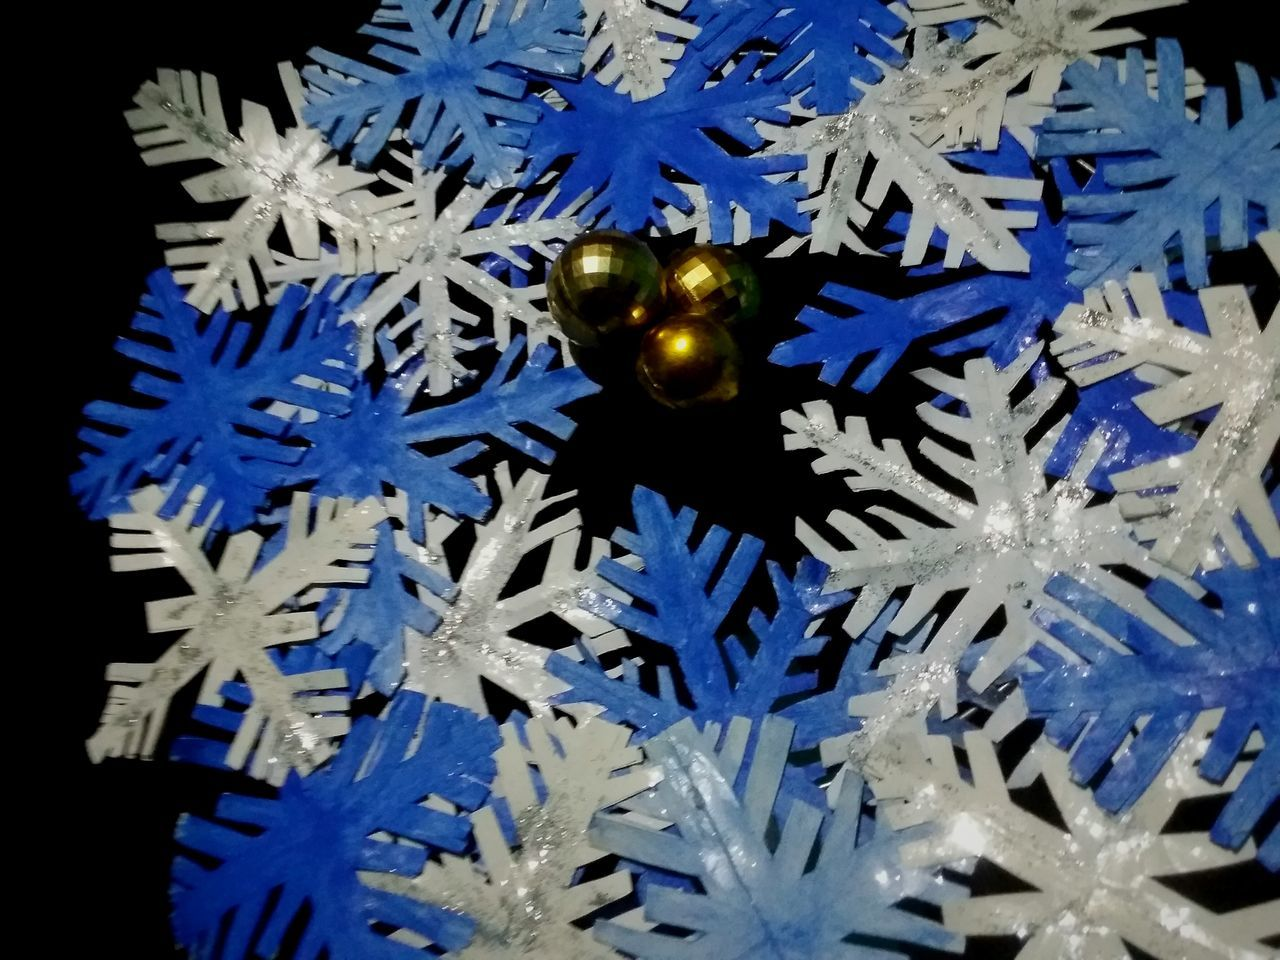 High Angle View Of Christmas Decorations On Black Background